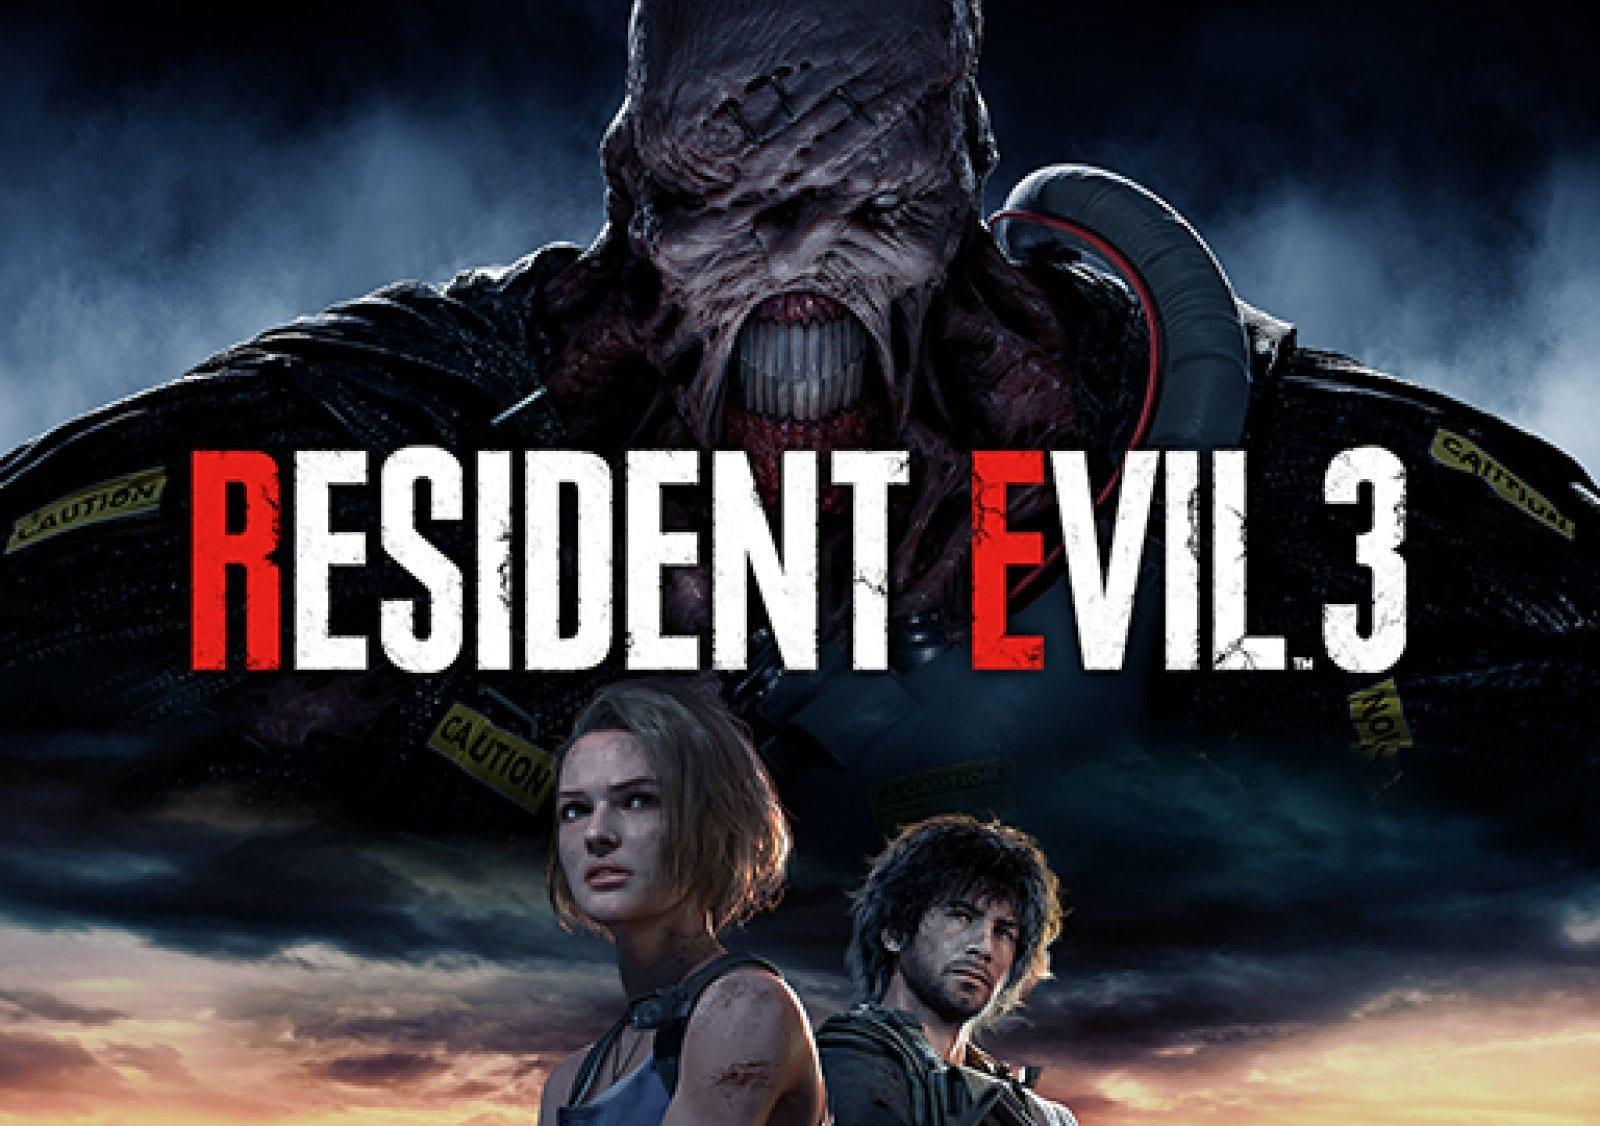 Resident Evil 3 Remake Hits Ps4 Xbox One And Pc On April 3rd